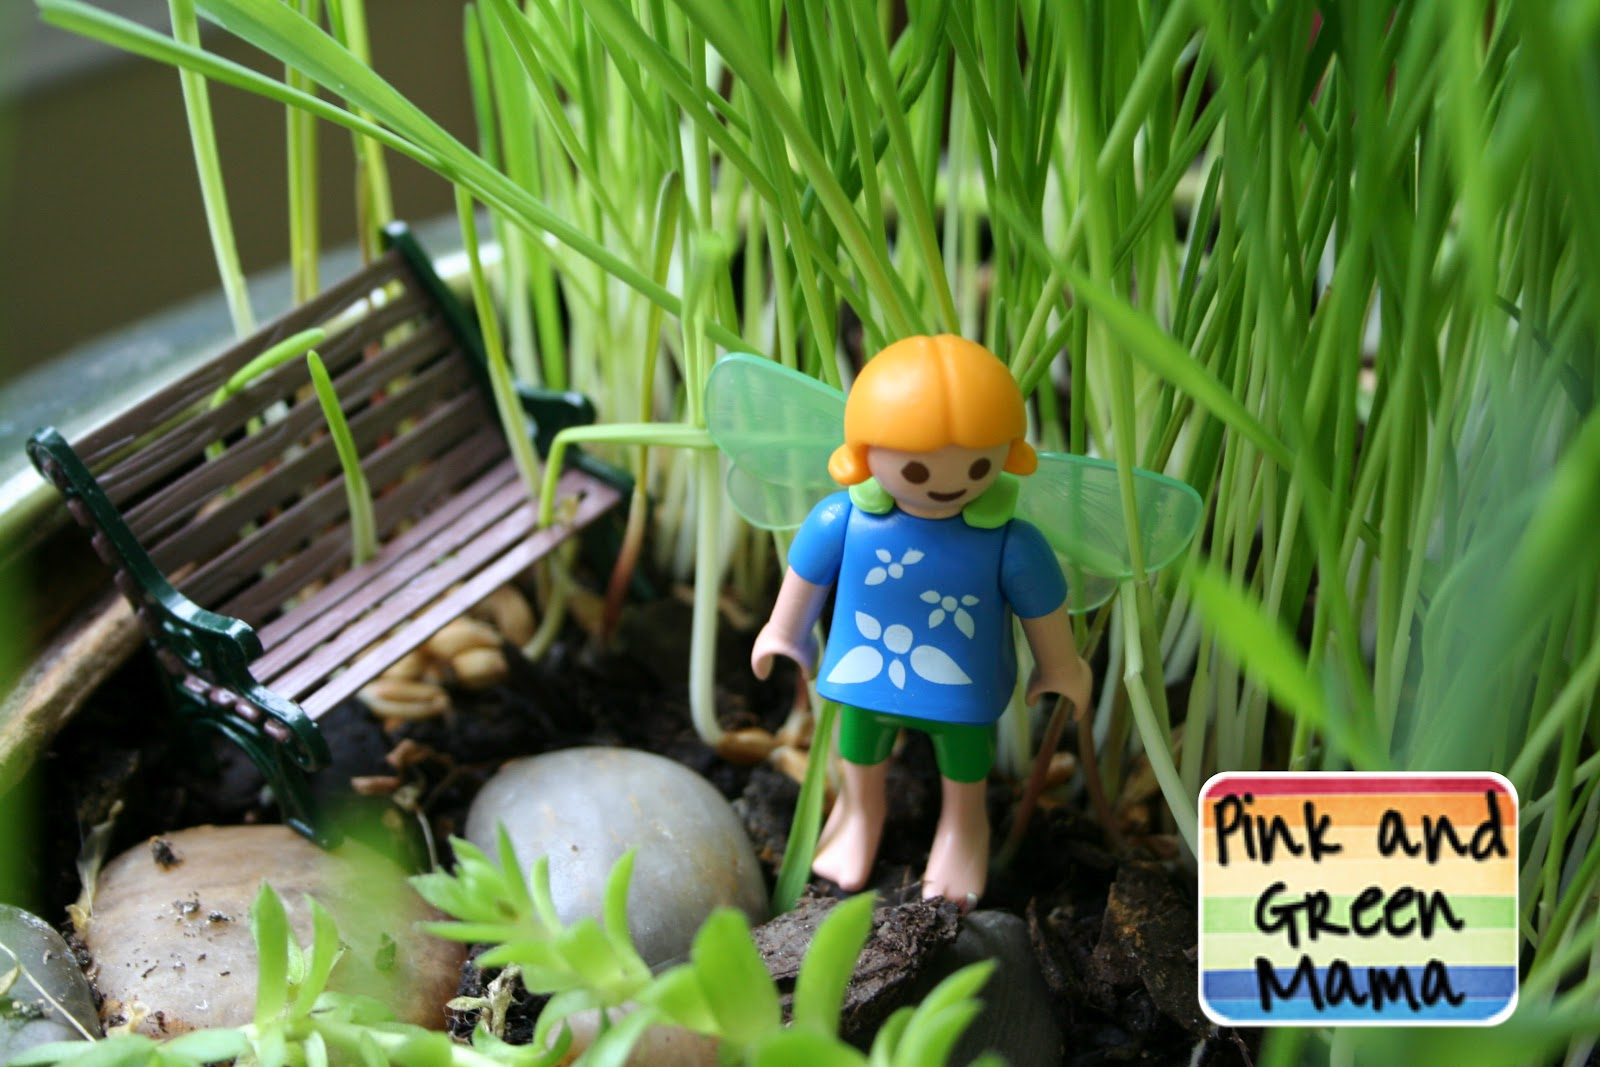 example of a pink and green mama   indoor cat fairy garden